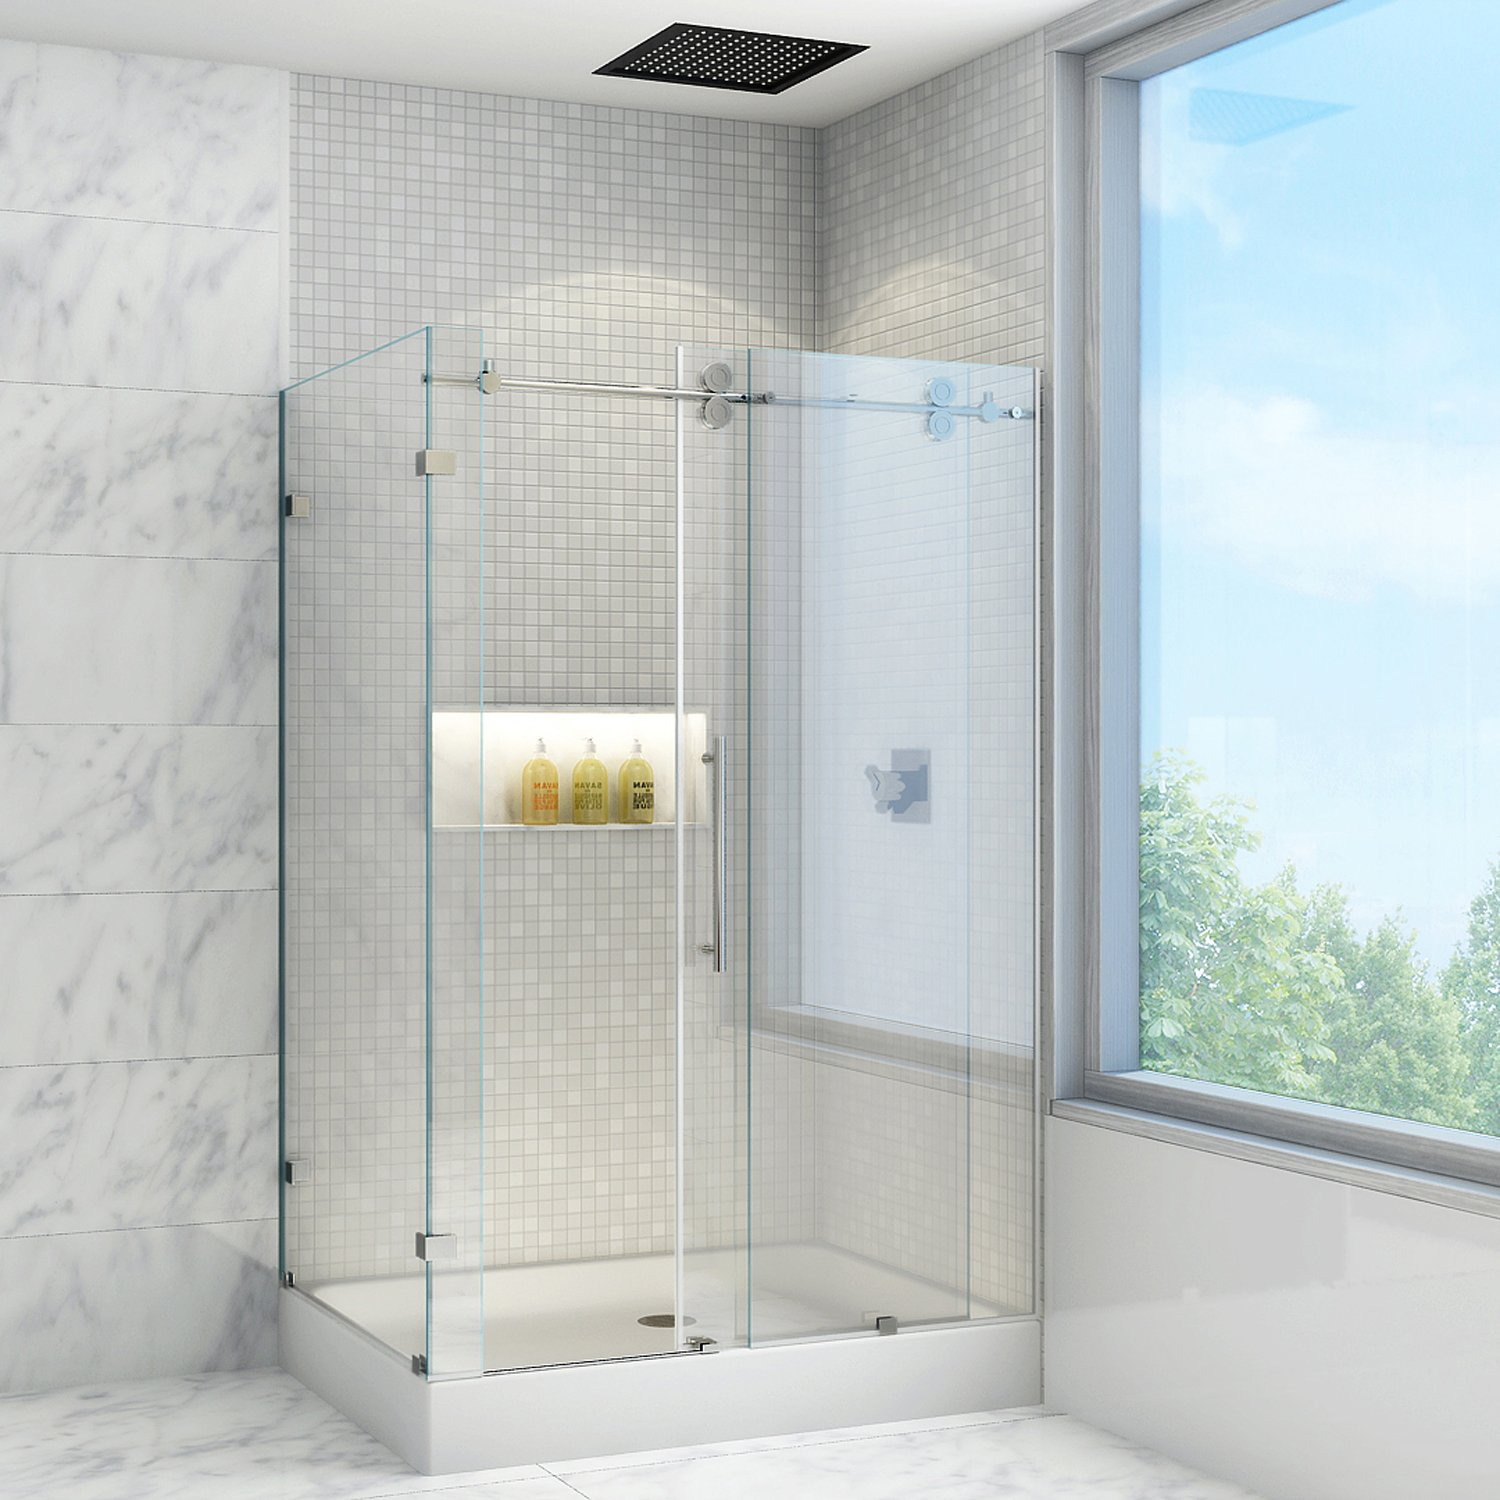 Frameless Sliding Shower Enclosure with .375-in. Clear Glass and Stainless Steel Hardware with (Right Base included) - One Piece Tub And Shower Enclosures ... & VIGO Winslow 36 x 48-in. Frameless Sliding Shower Enclosure with ... Pezcame.Com